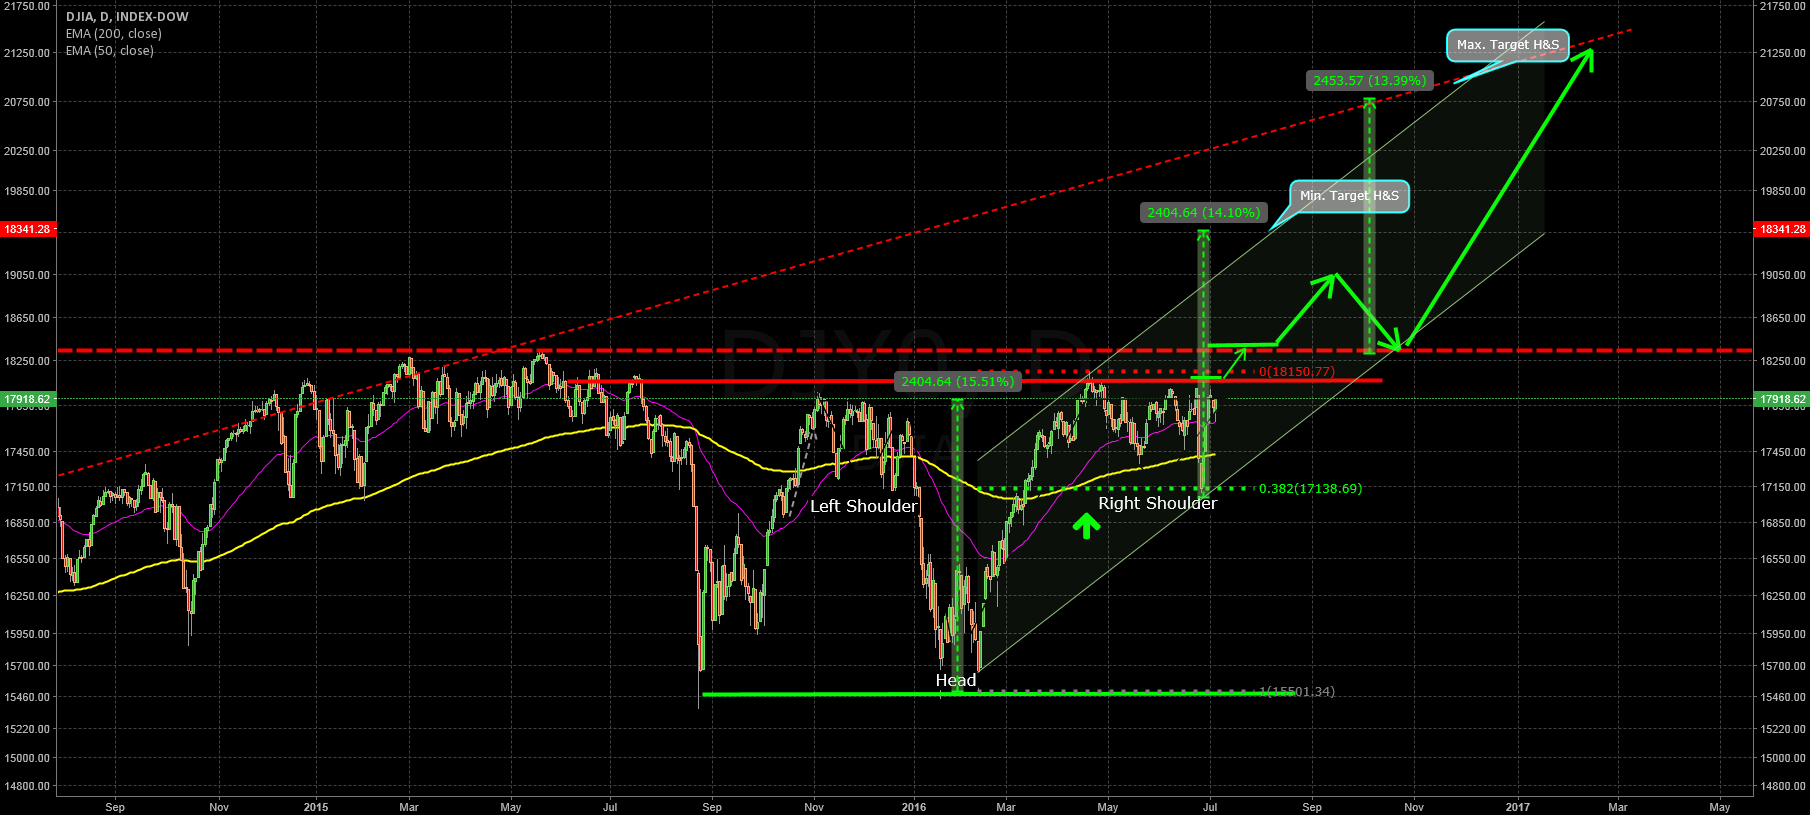 H&S - good for 2.400 points or 13,5%?